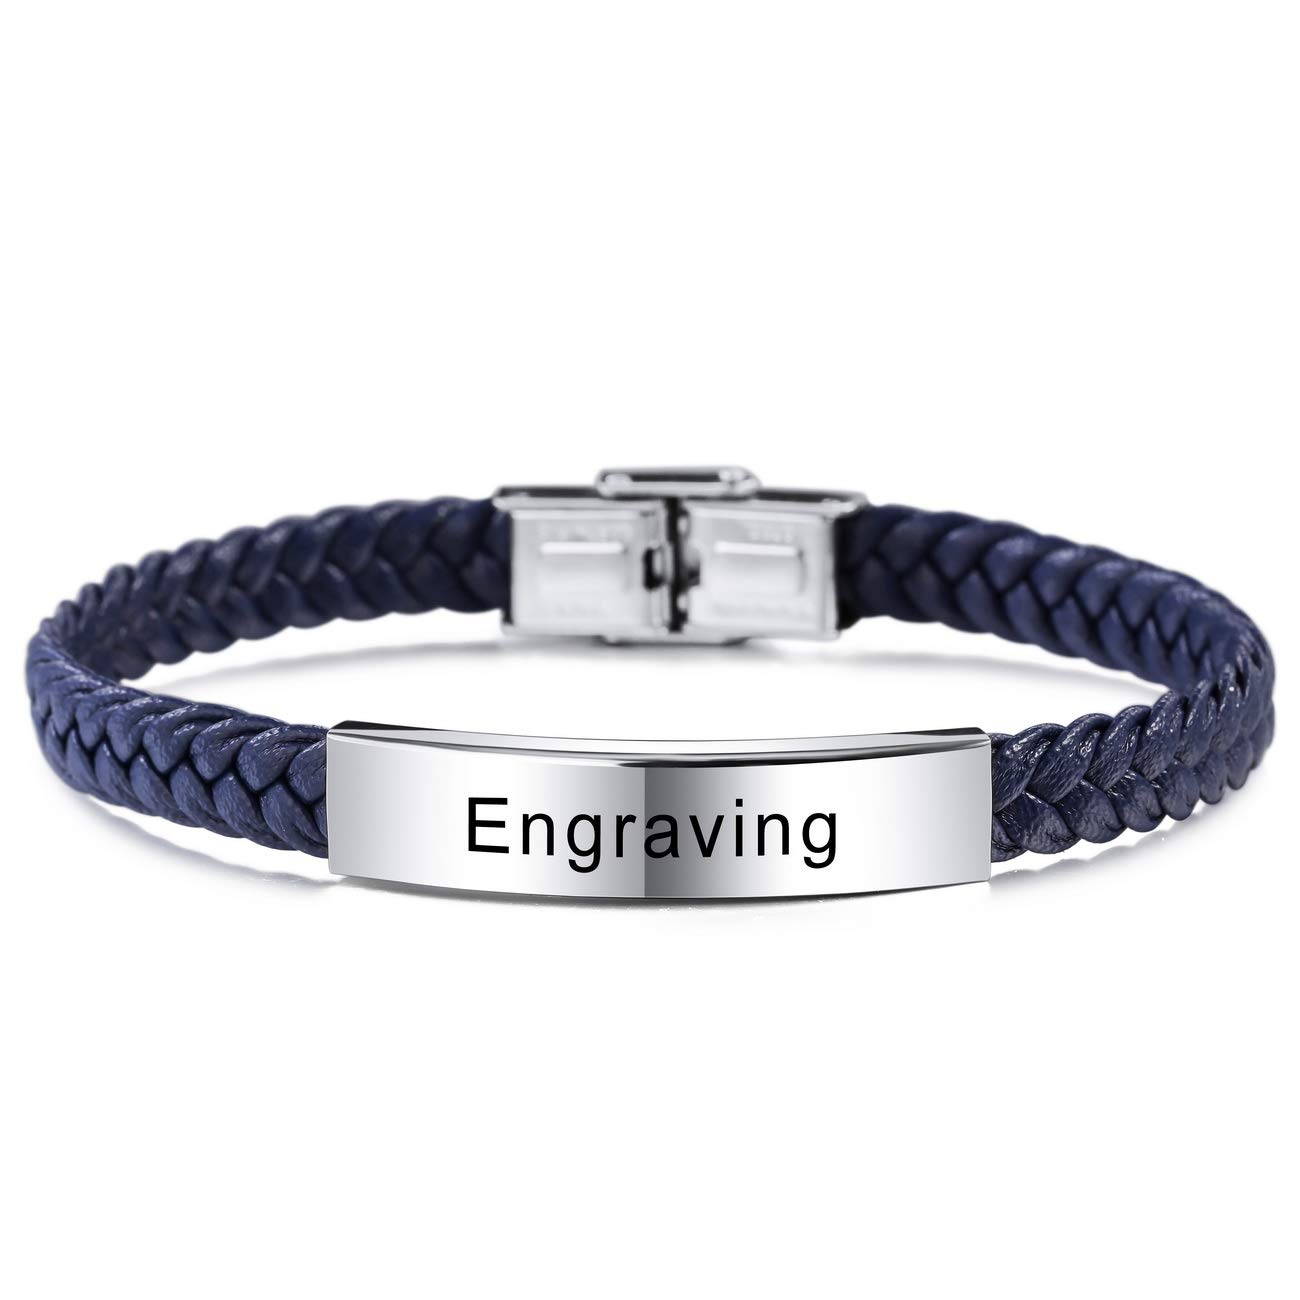 6 Colors MeMeDIY Name Bracelet Personalized Bracelets for Women Customized Bracelets for Boys Men Girls Stainless Steel Genuine Leather Engraving Braided Cuff Adjustable